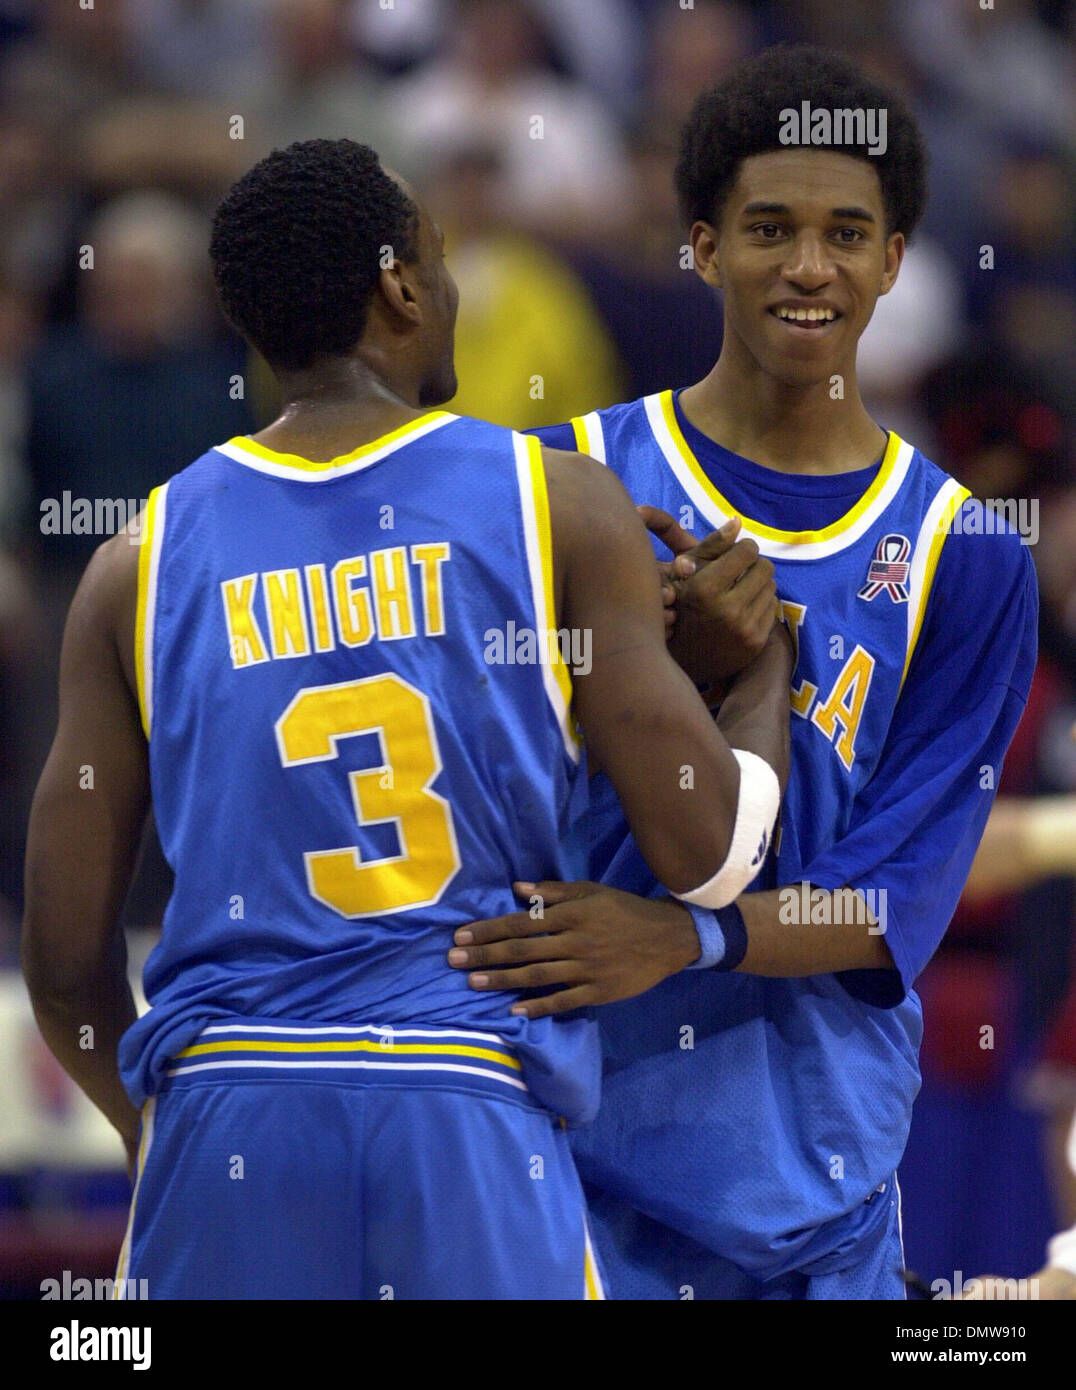 Mar 17 2002 PIttsburgh PA USA UCLA s Billy Knight 3 Stock